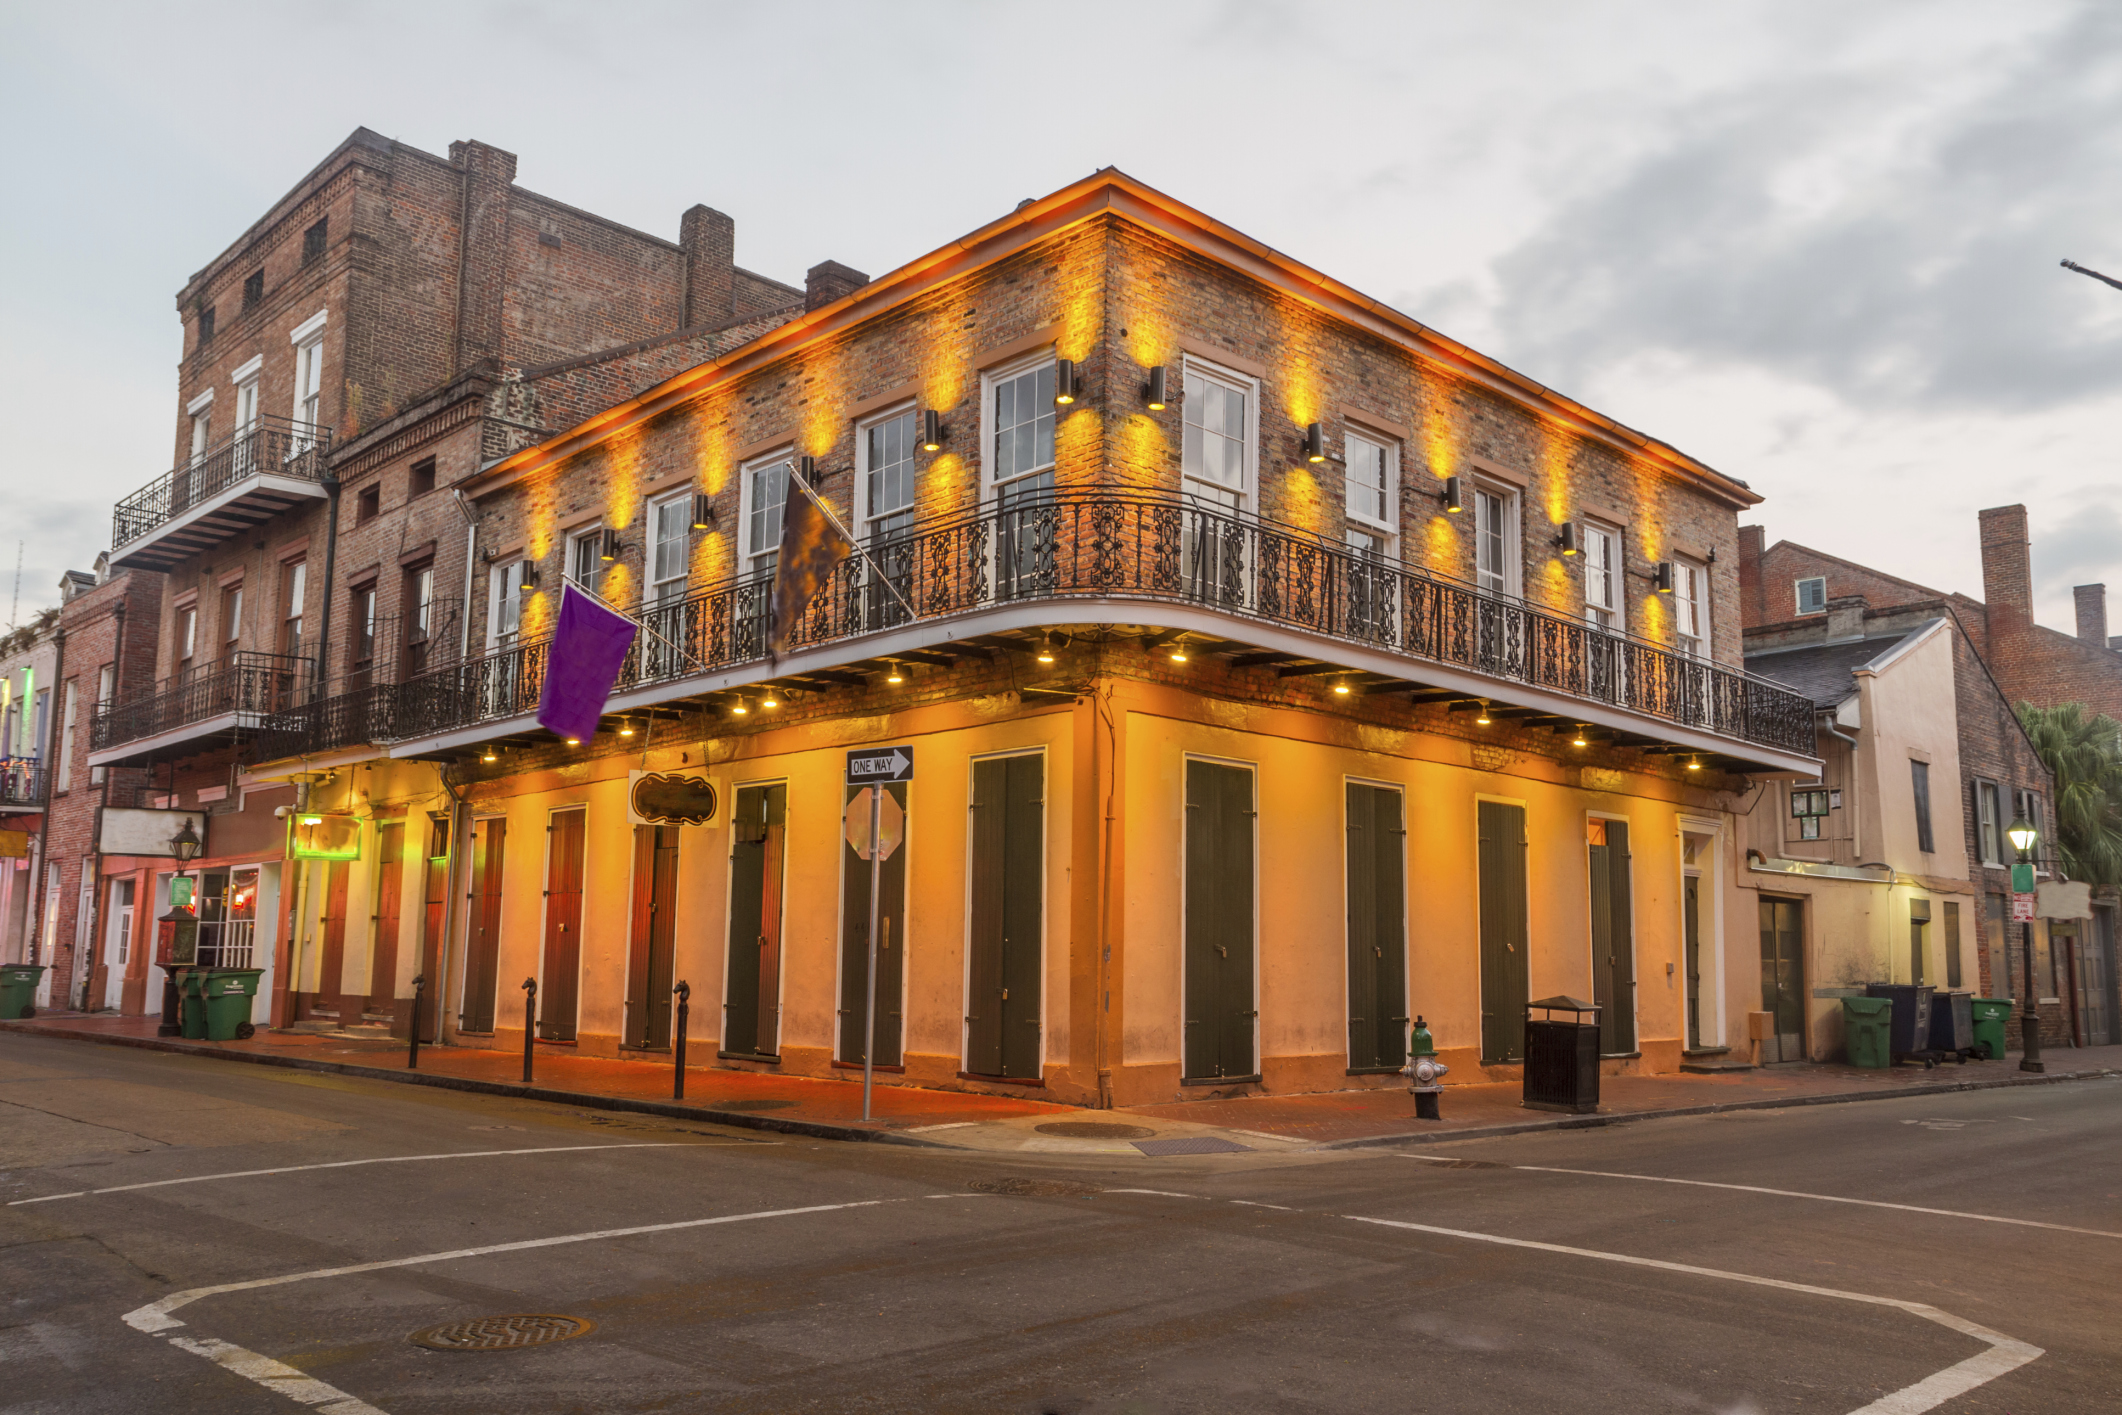 New Orleans Hotels With Shuttle Service To Cruise Port